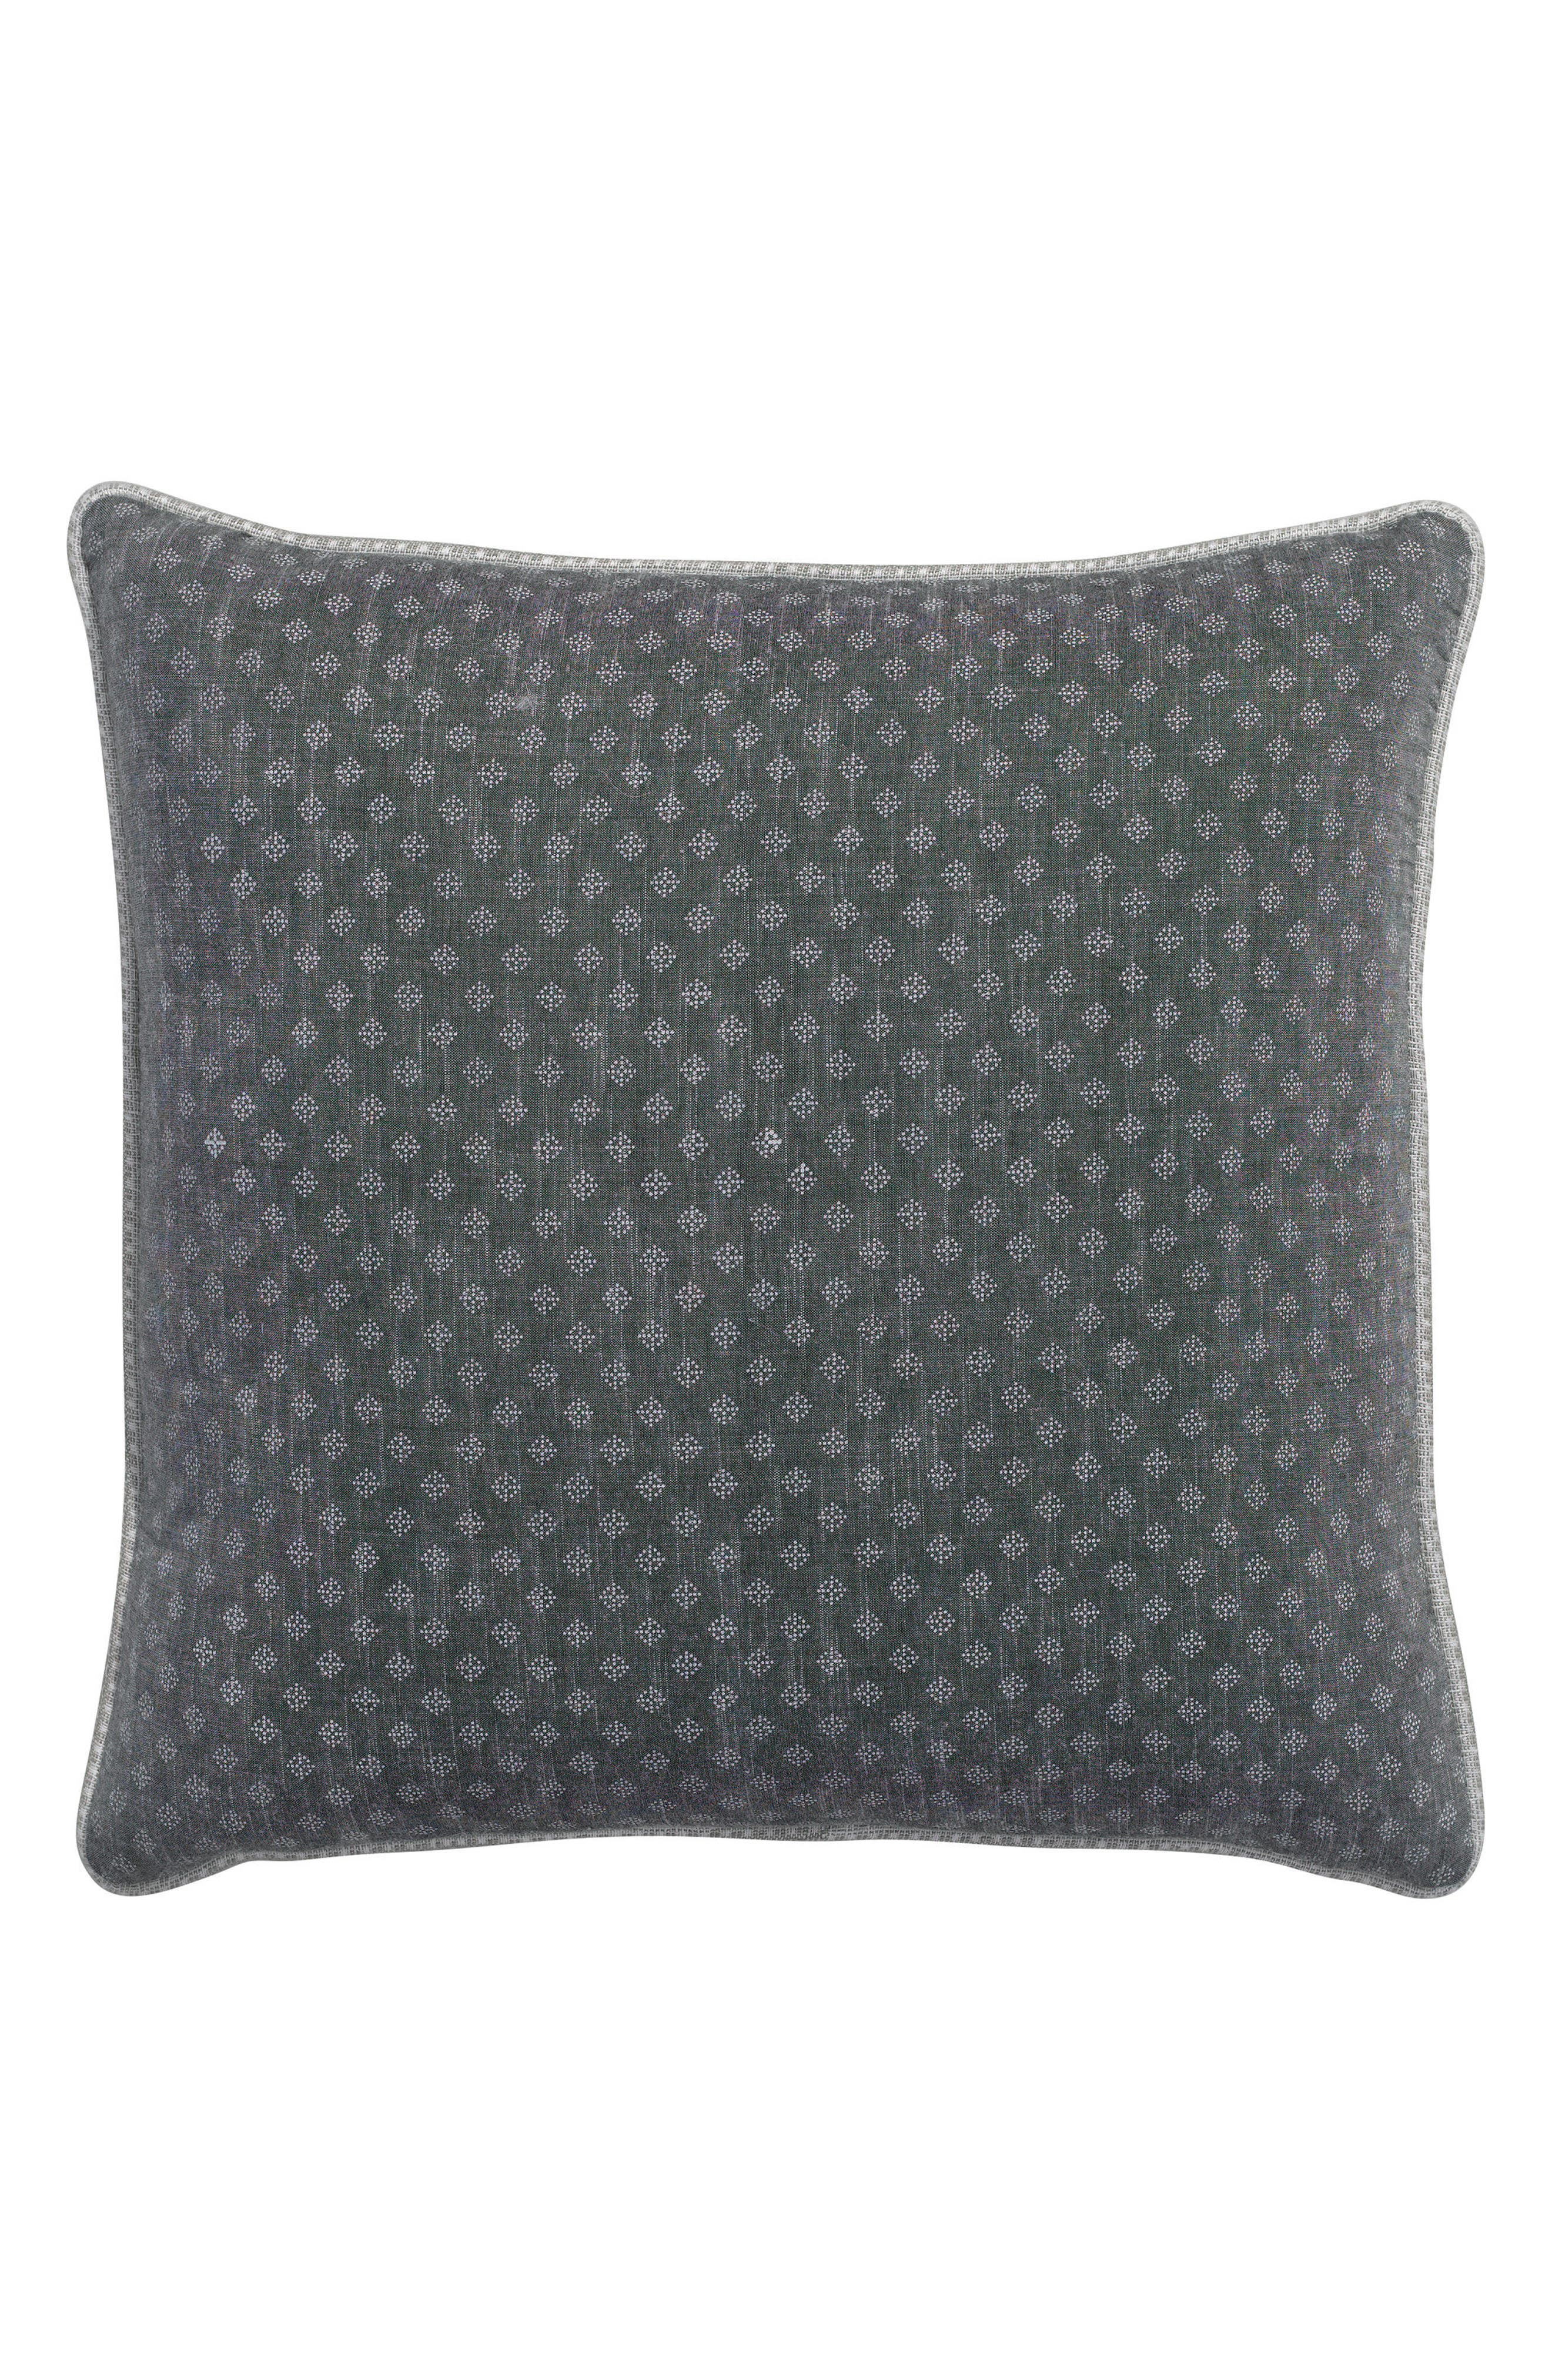 Main Image - Portico Park Ave Square Printed Dot Organic Cotton Accent Pillow